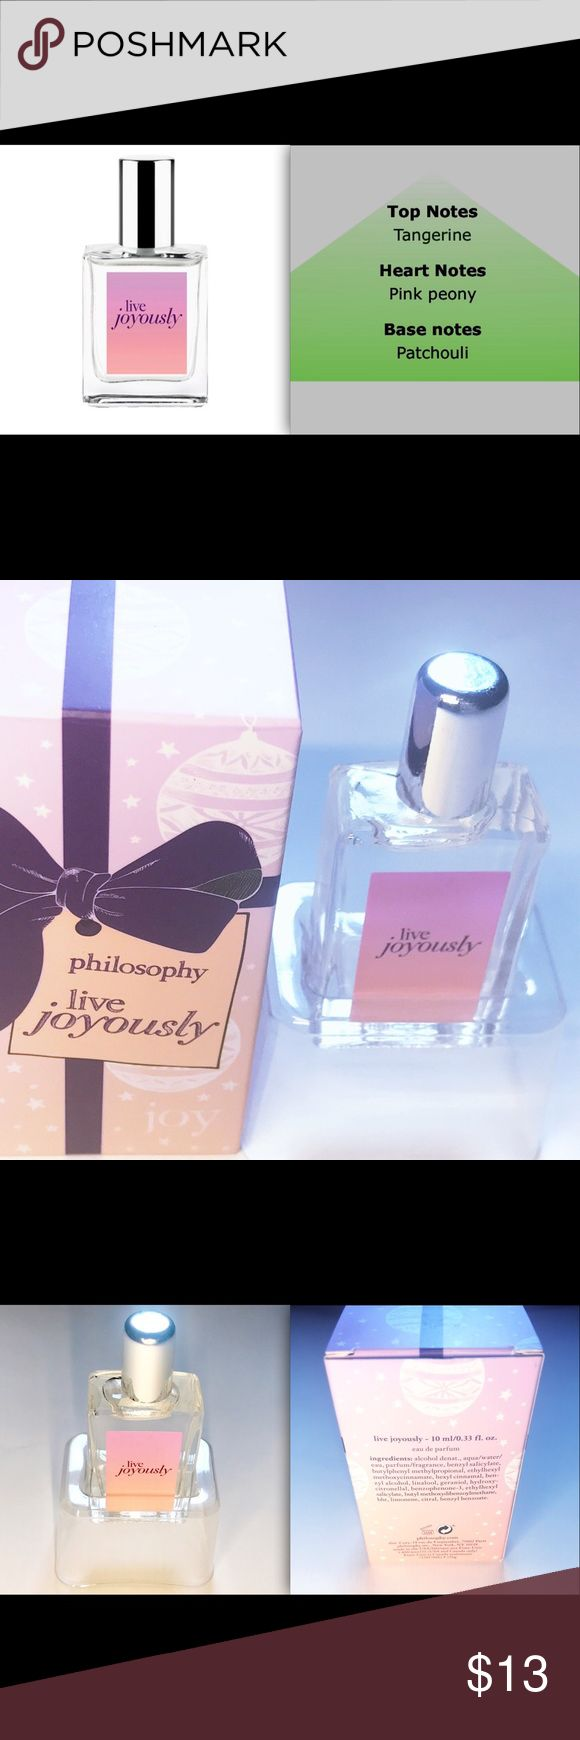 NEW Philosophy Live Joyously eau de parfum ..33 oz NEW Philosophy Live Joyously -philosophy pink peony blossoms with a dynamic femininity expressive - captivating and dynamic. bring a little joy everywhere you roam. this easy-to-tote rollerball lets you experience this expressive - floral perfume wherever life may take you. sparkling tangerine - pink peony blossoms and warm patchouli infuse days and nights with joie de vivre. Philosophy Makeup